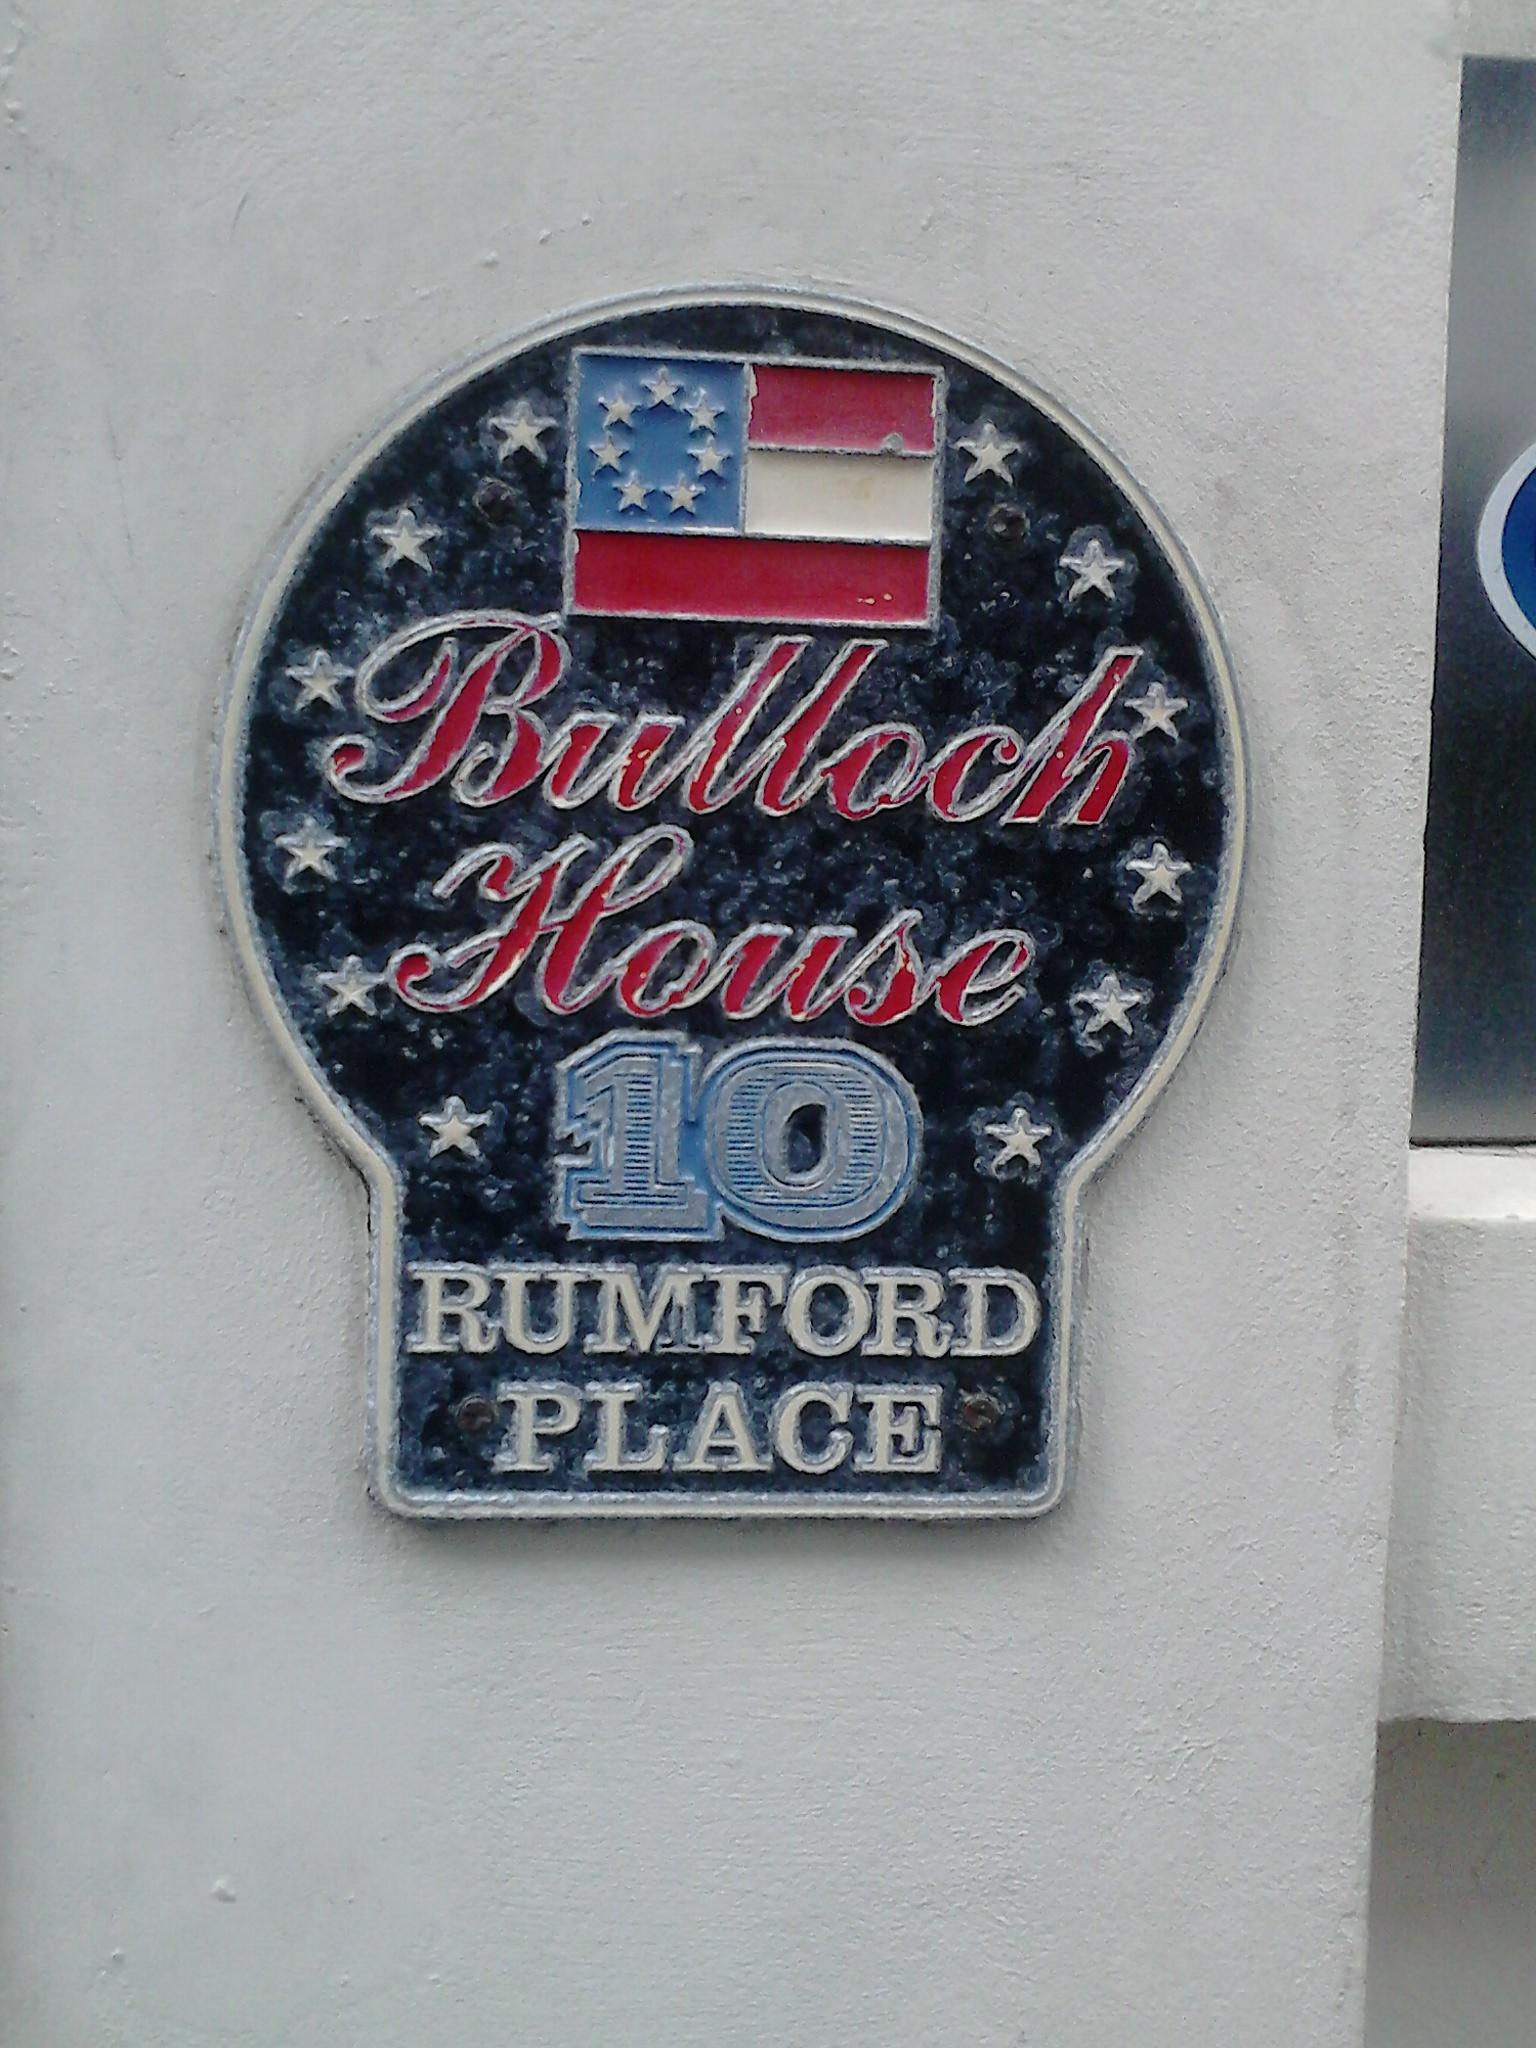 The Bulloch home, 10 Rumford Place